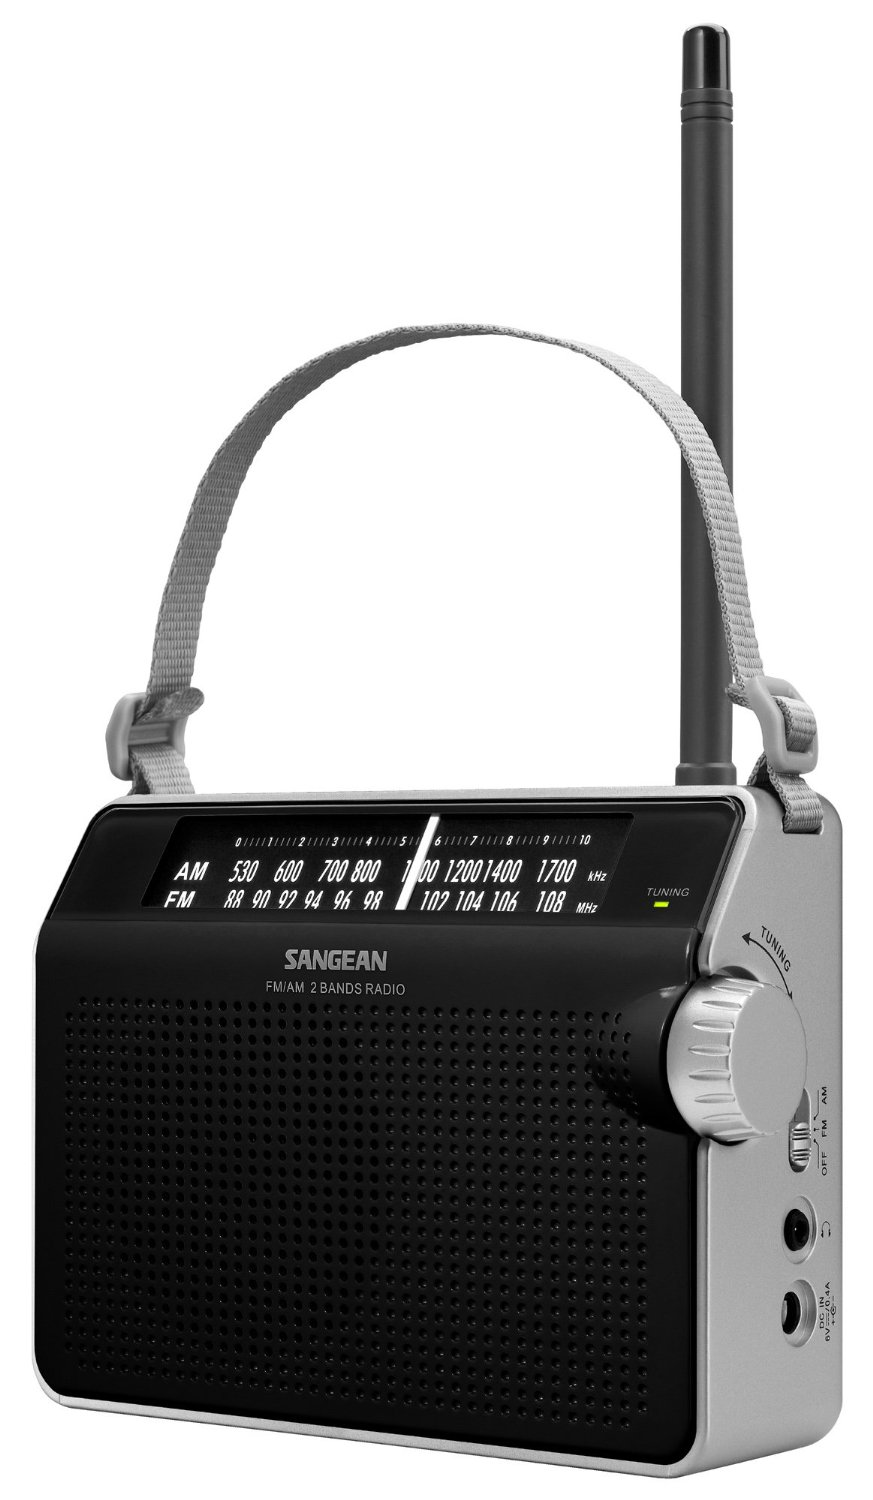 Sangean Pr D6 Am Fm Portable Radio Radiojayallen Low Cost A Surprising 30